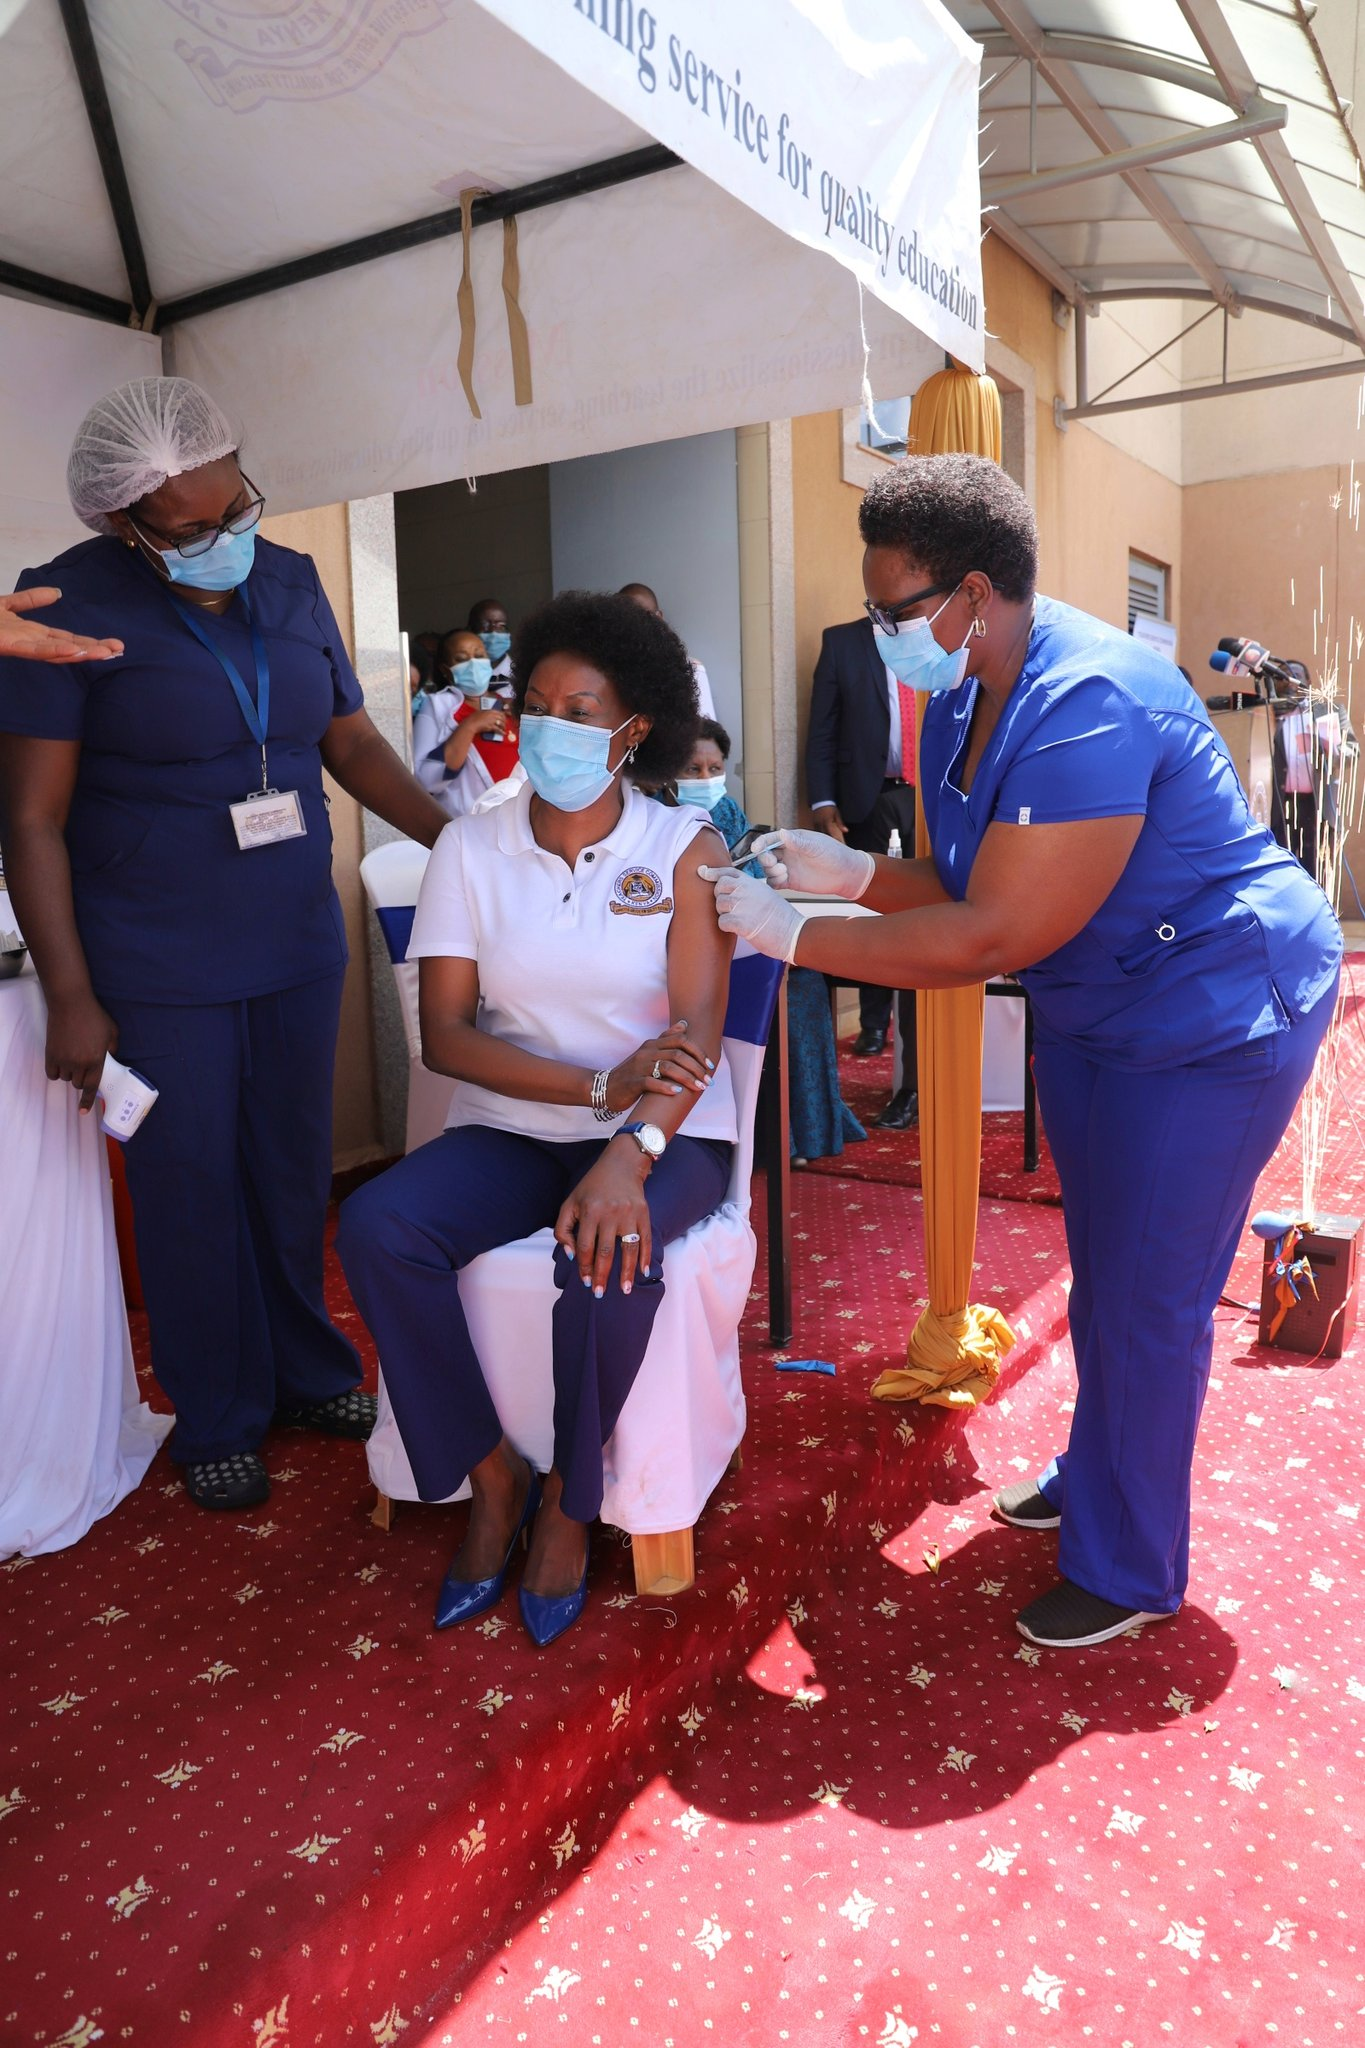 Dr. Macharia receives her Covid 19 jab. She has urged all teachers to follow suit and get vaccinated against the killer disease.